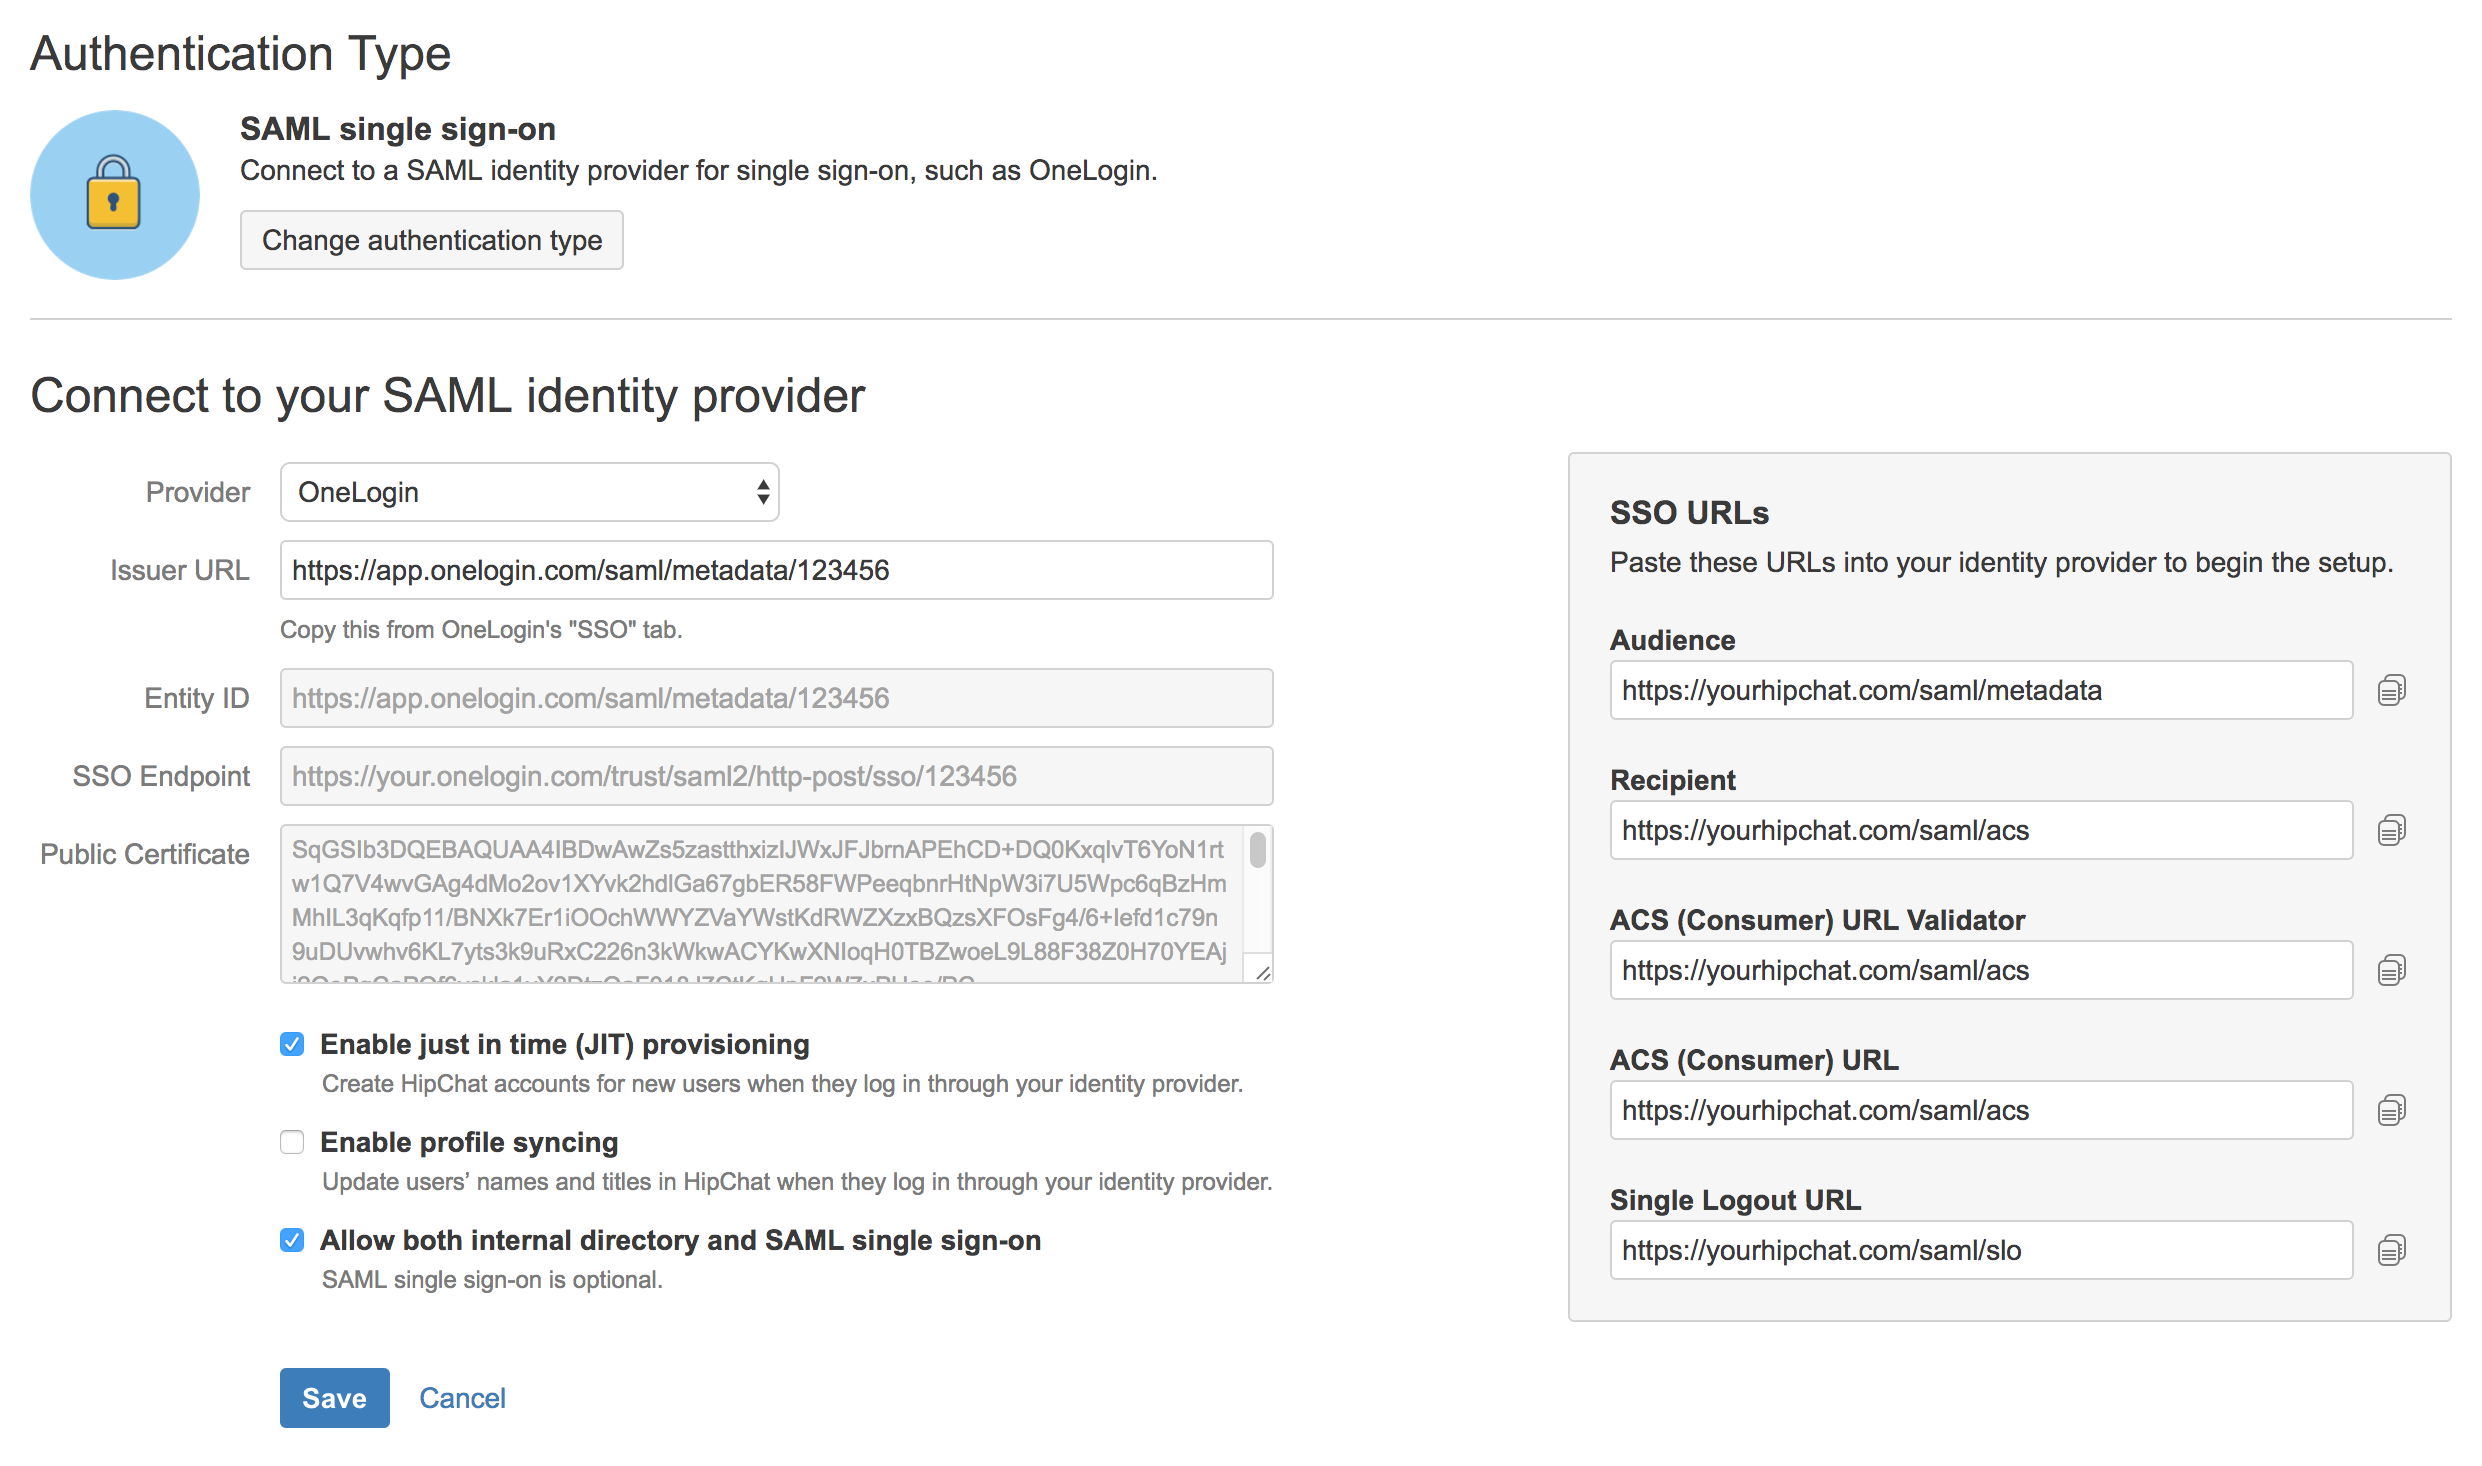 Connect to a SAML identity provider for single sign-on - Atlassian